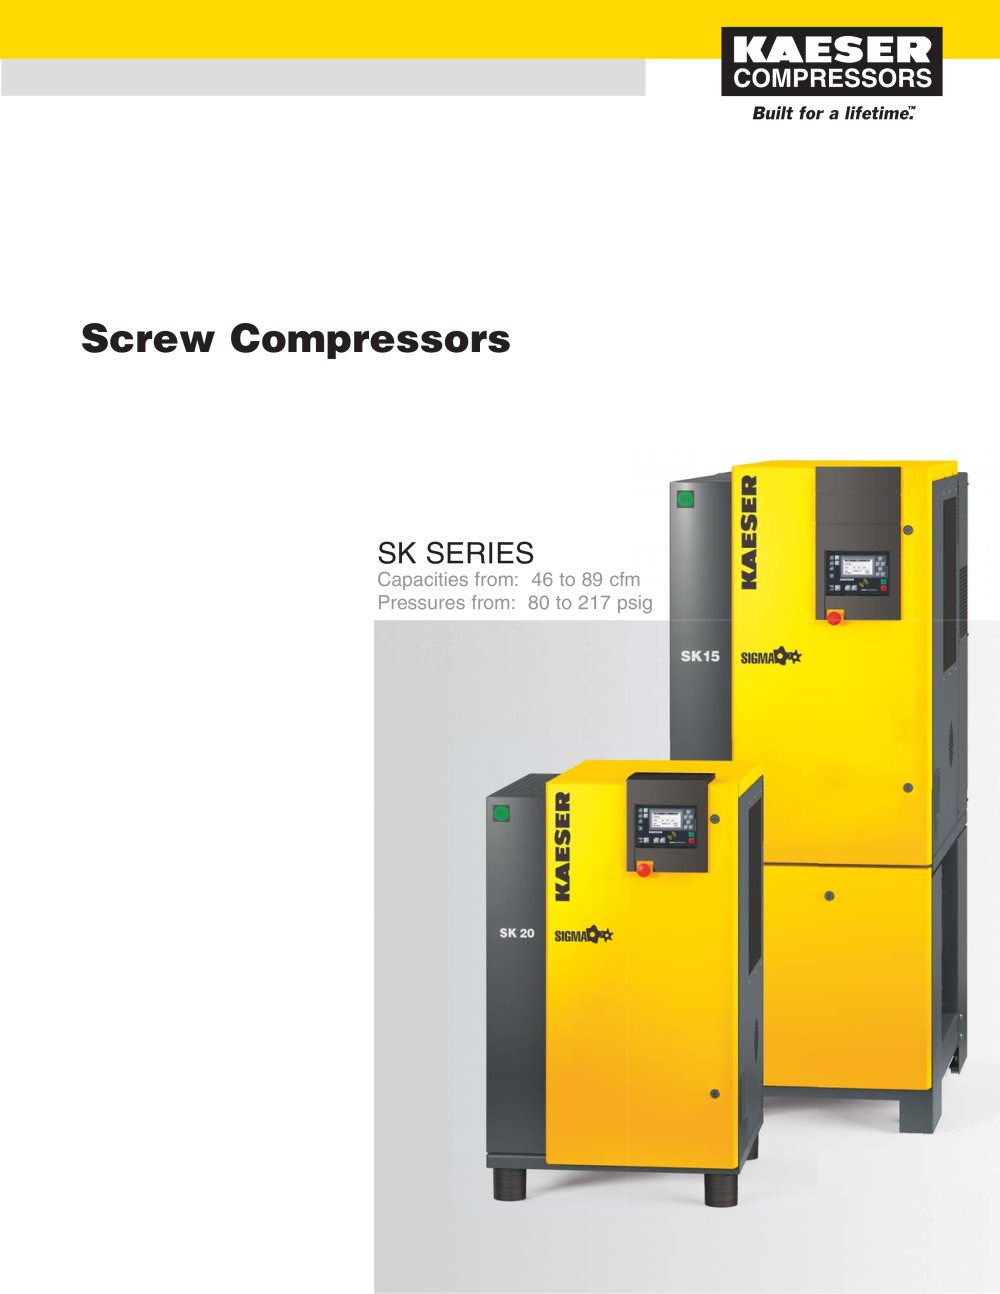 sk series compressors kaeser compressors pdf catalogue rh pdf directindustry com Kaeser BS 61 Manual Kaeser BS 61 Manual